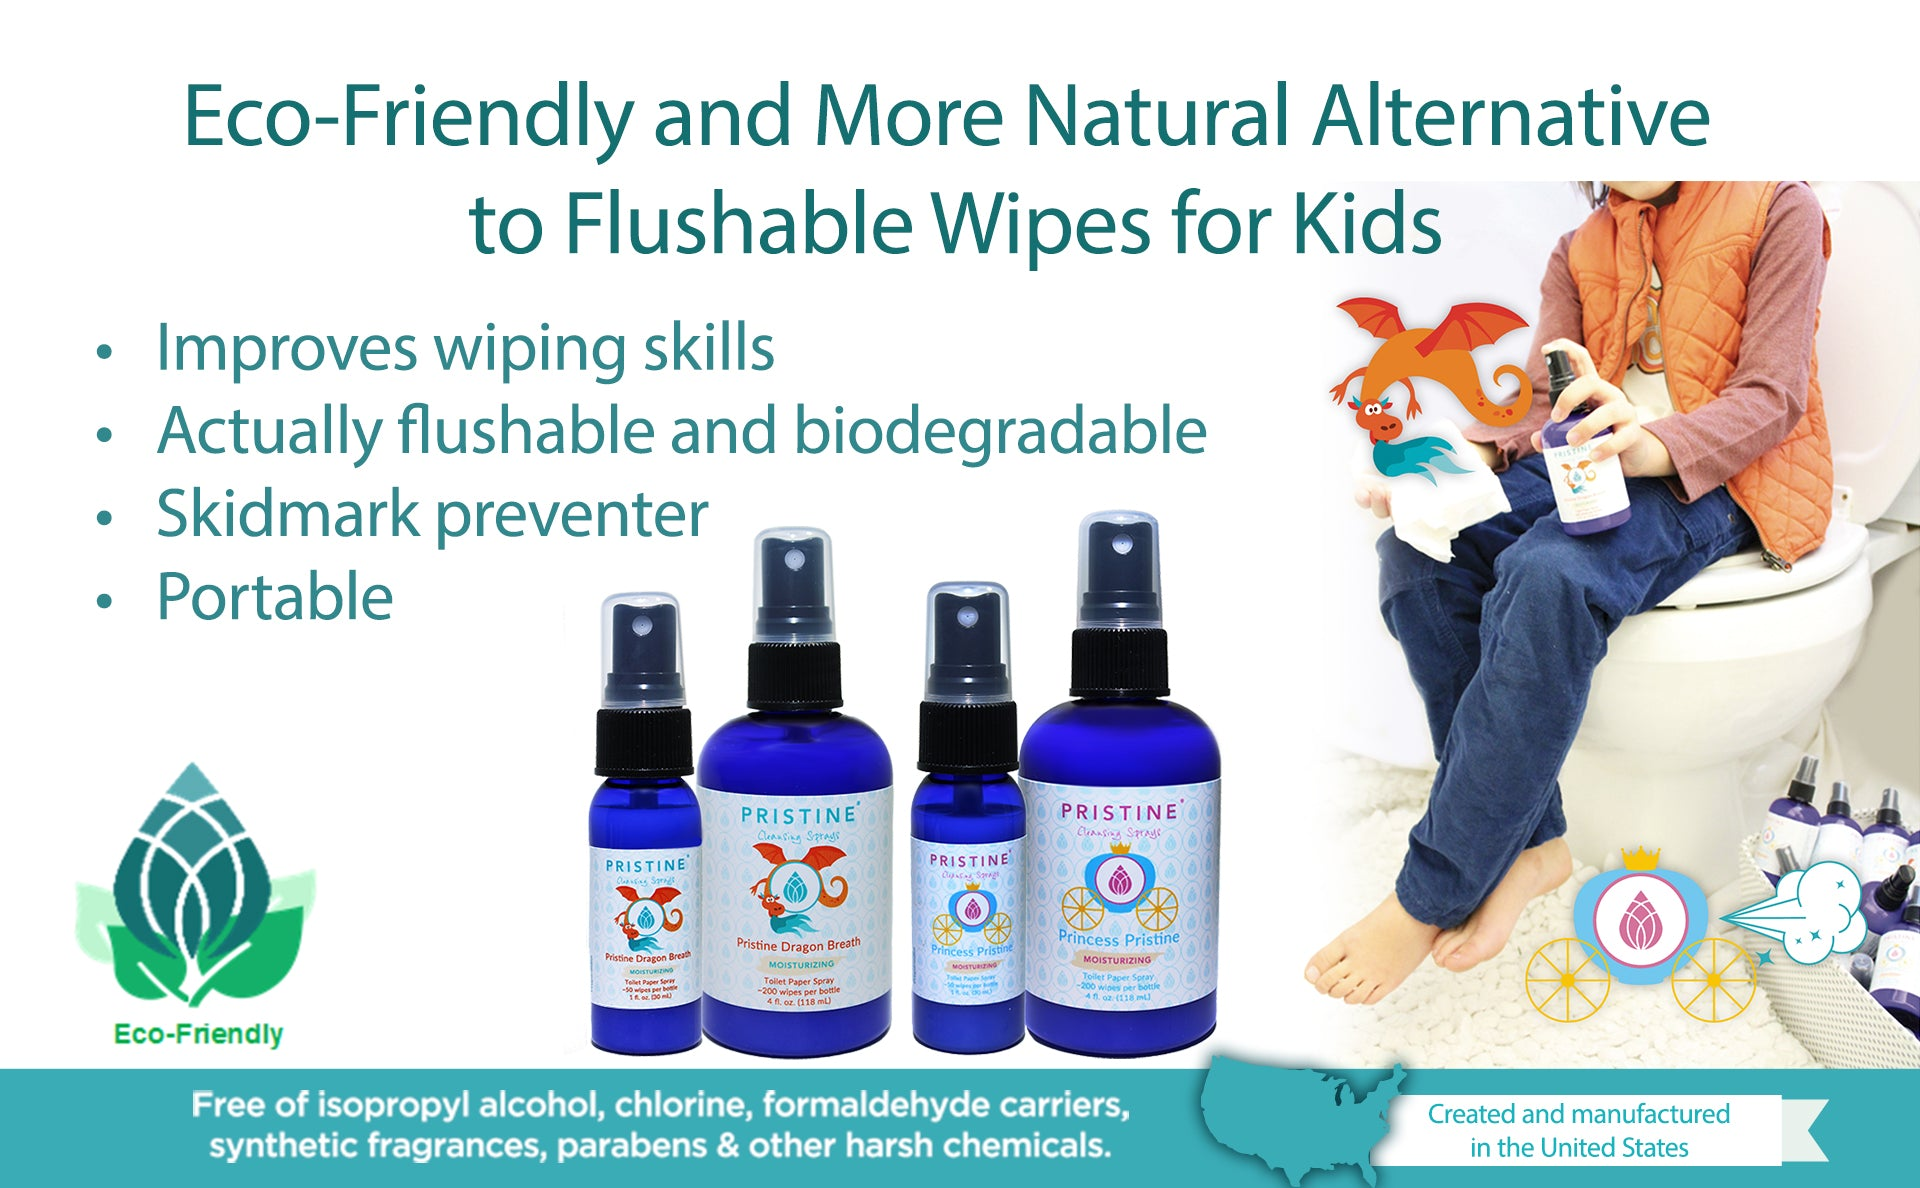 eco-friendly alternative to wet wipes, no synthetic fragrance, non-clogging, septic safe, sewer safe, toilet paper spray, helps with potty training.